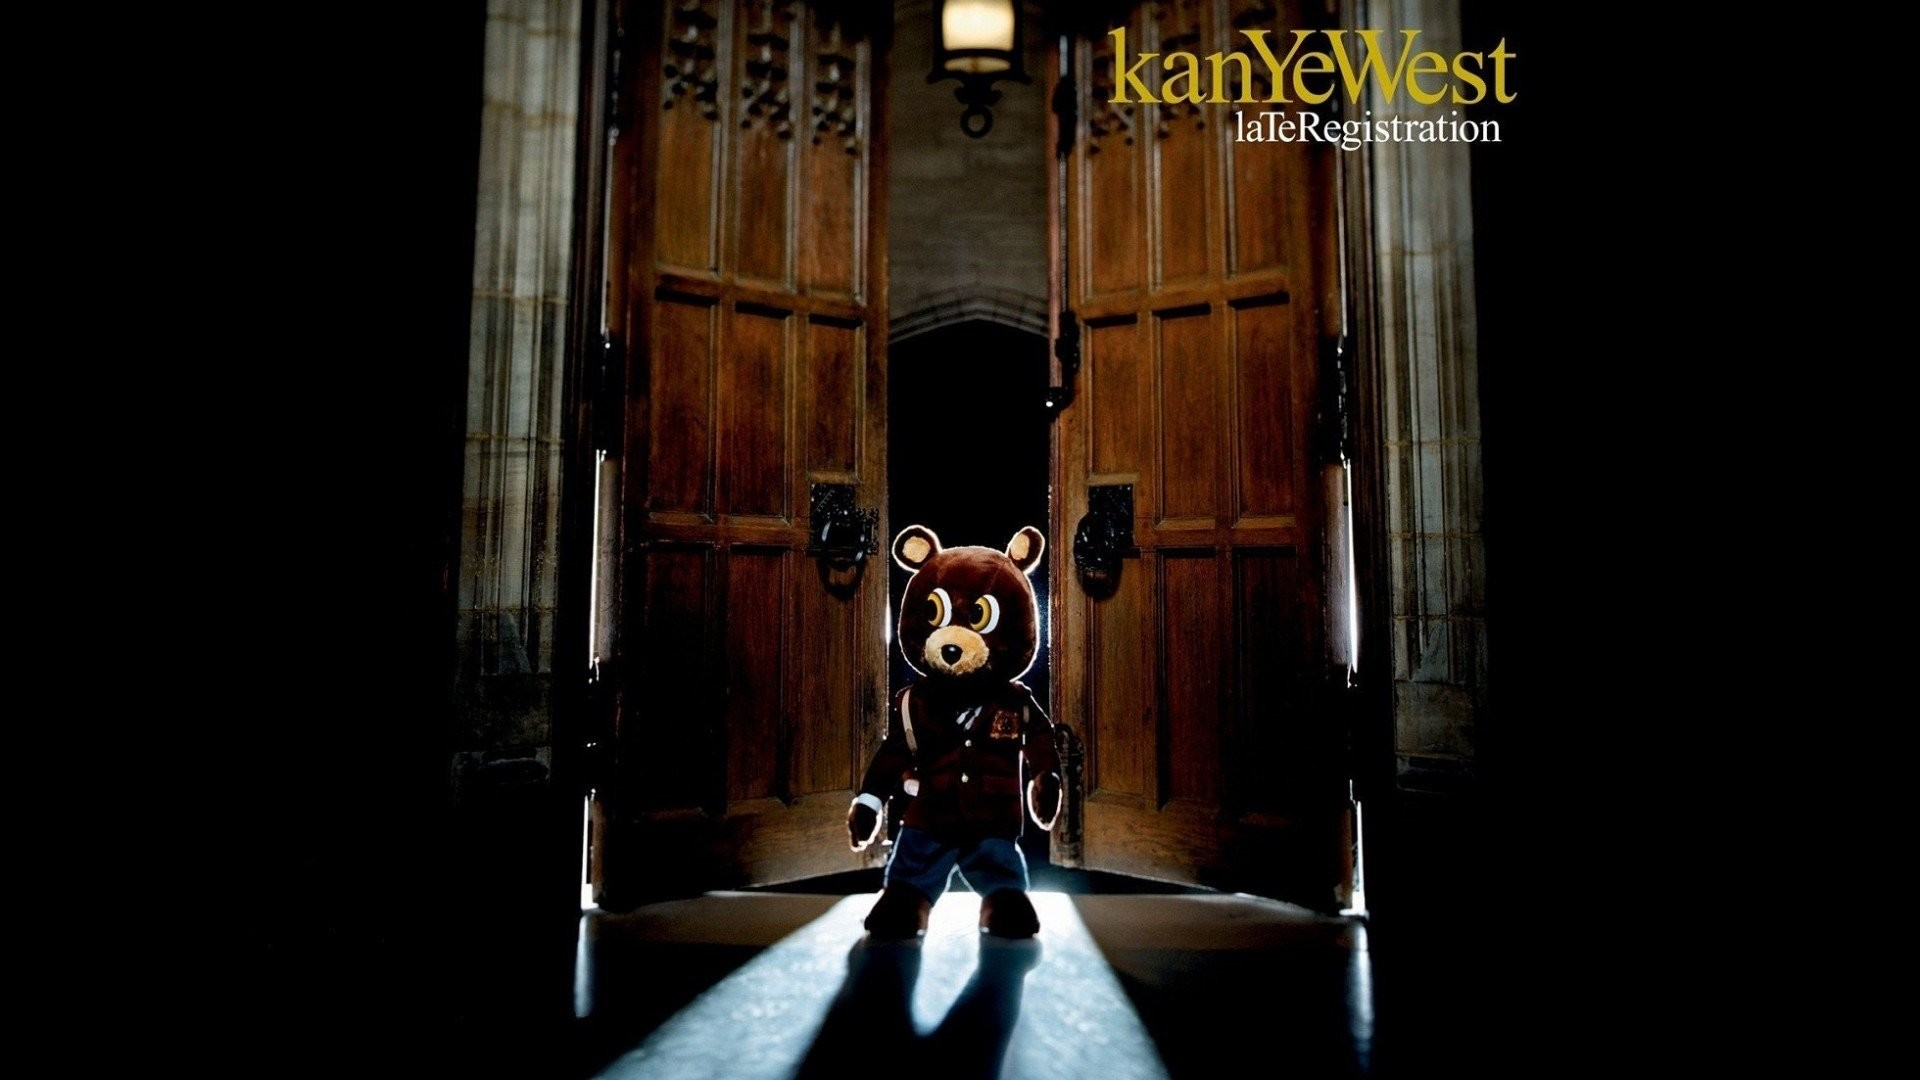 1920x1080 Kanye West Late Registration Album Cover